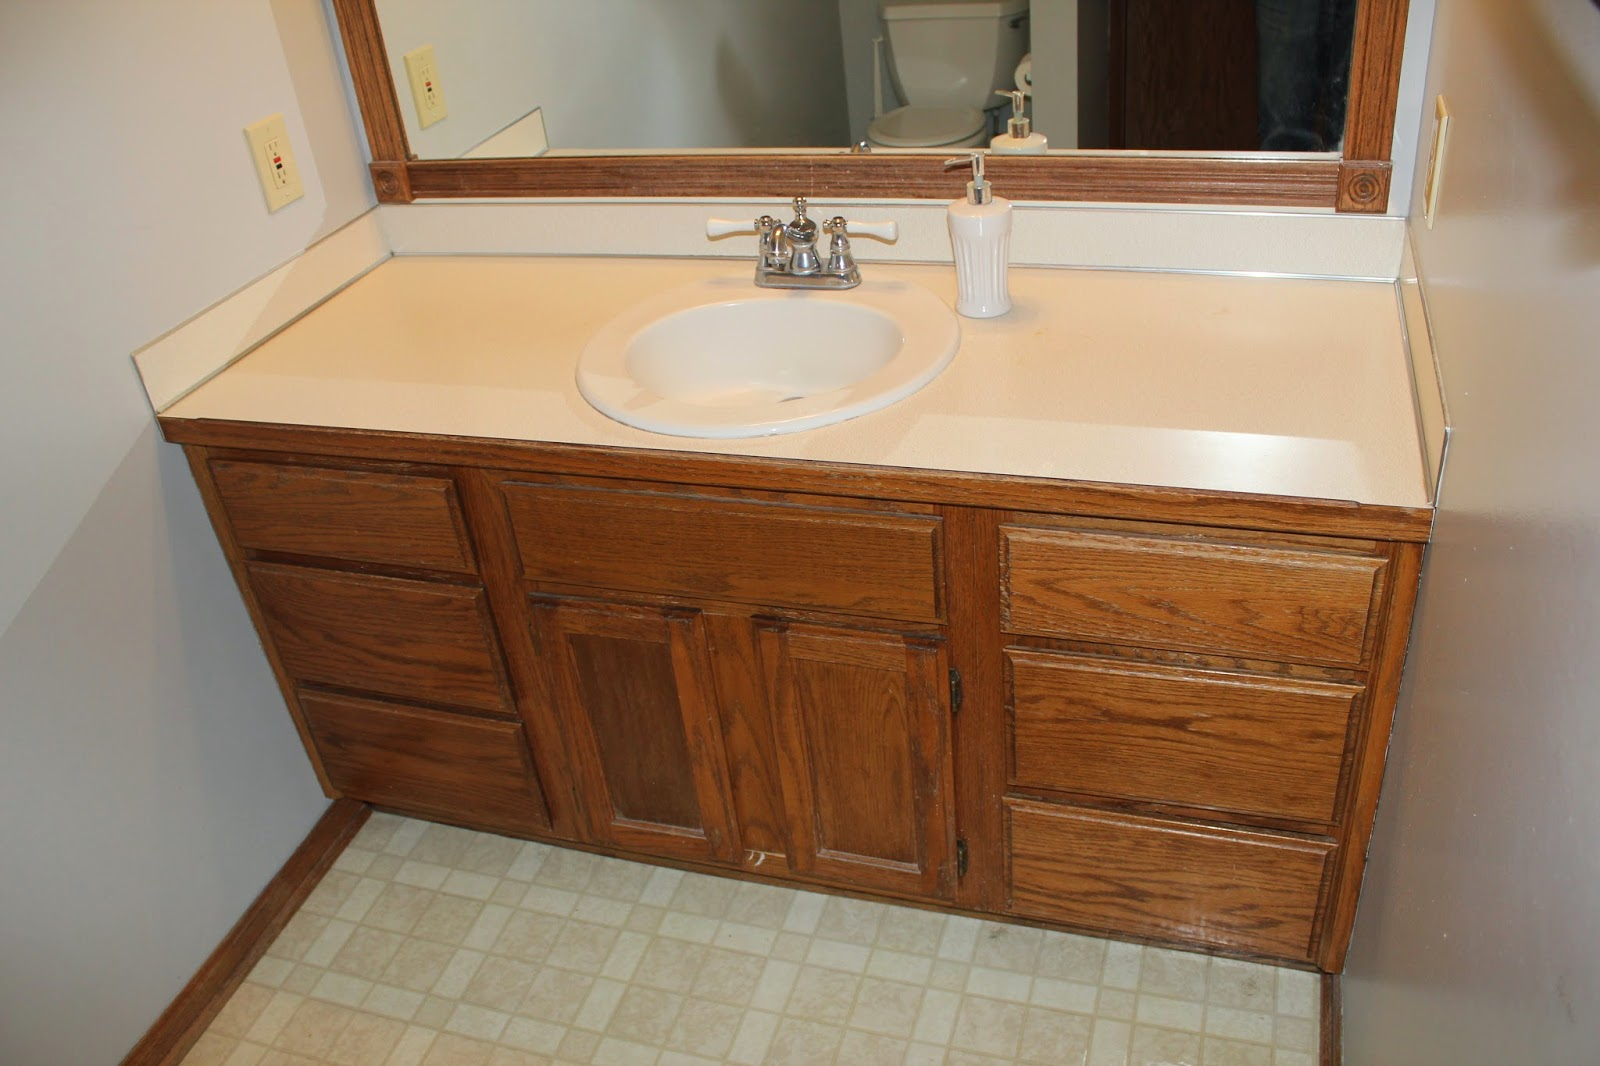 Ladditude our diy bathroom remodel for under 300 for Bathroom remodel 3000